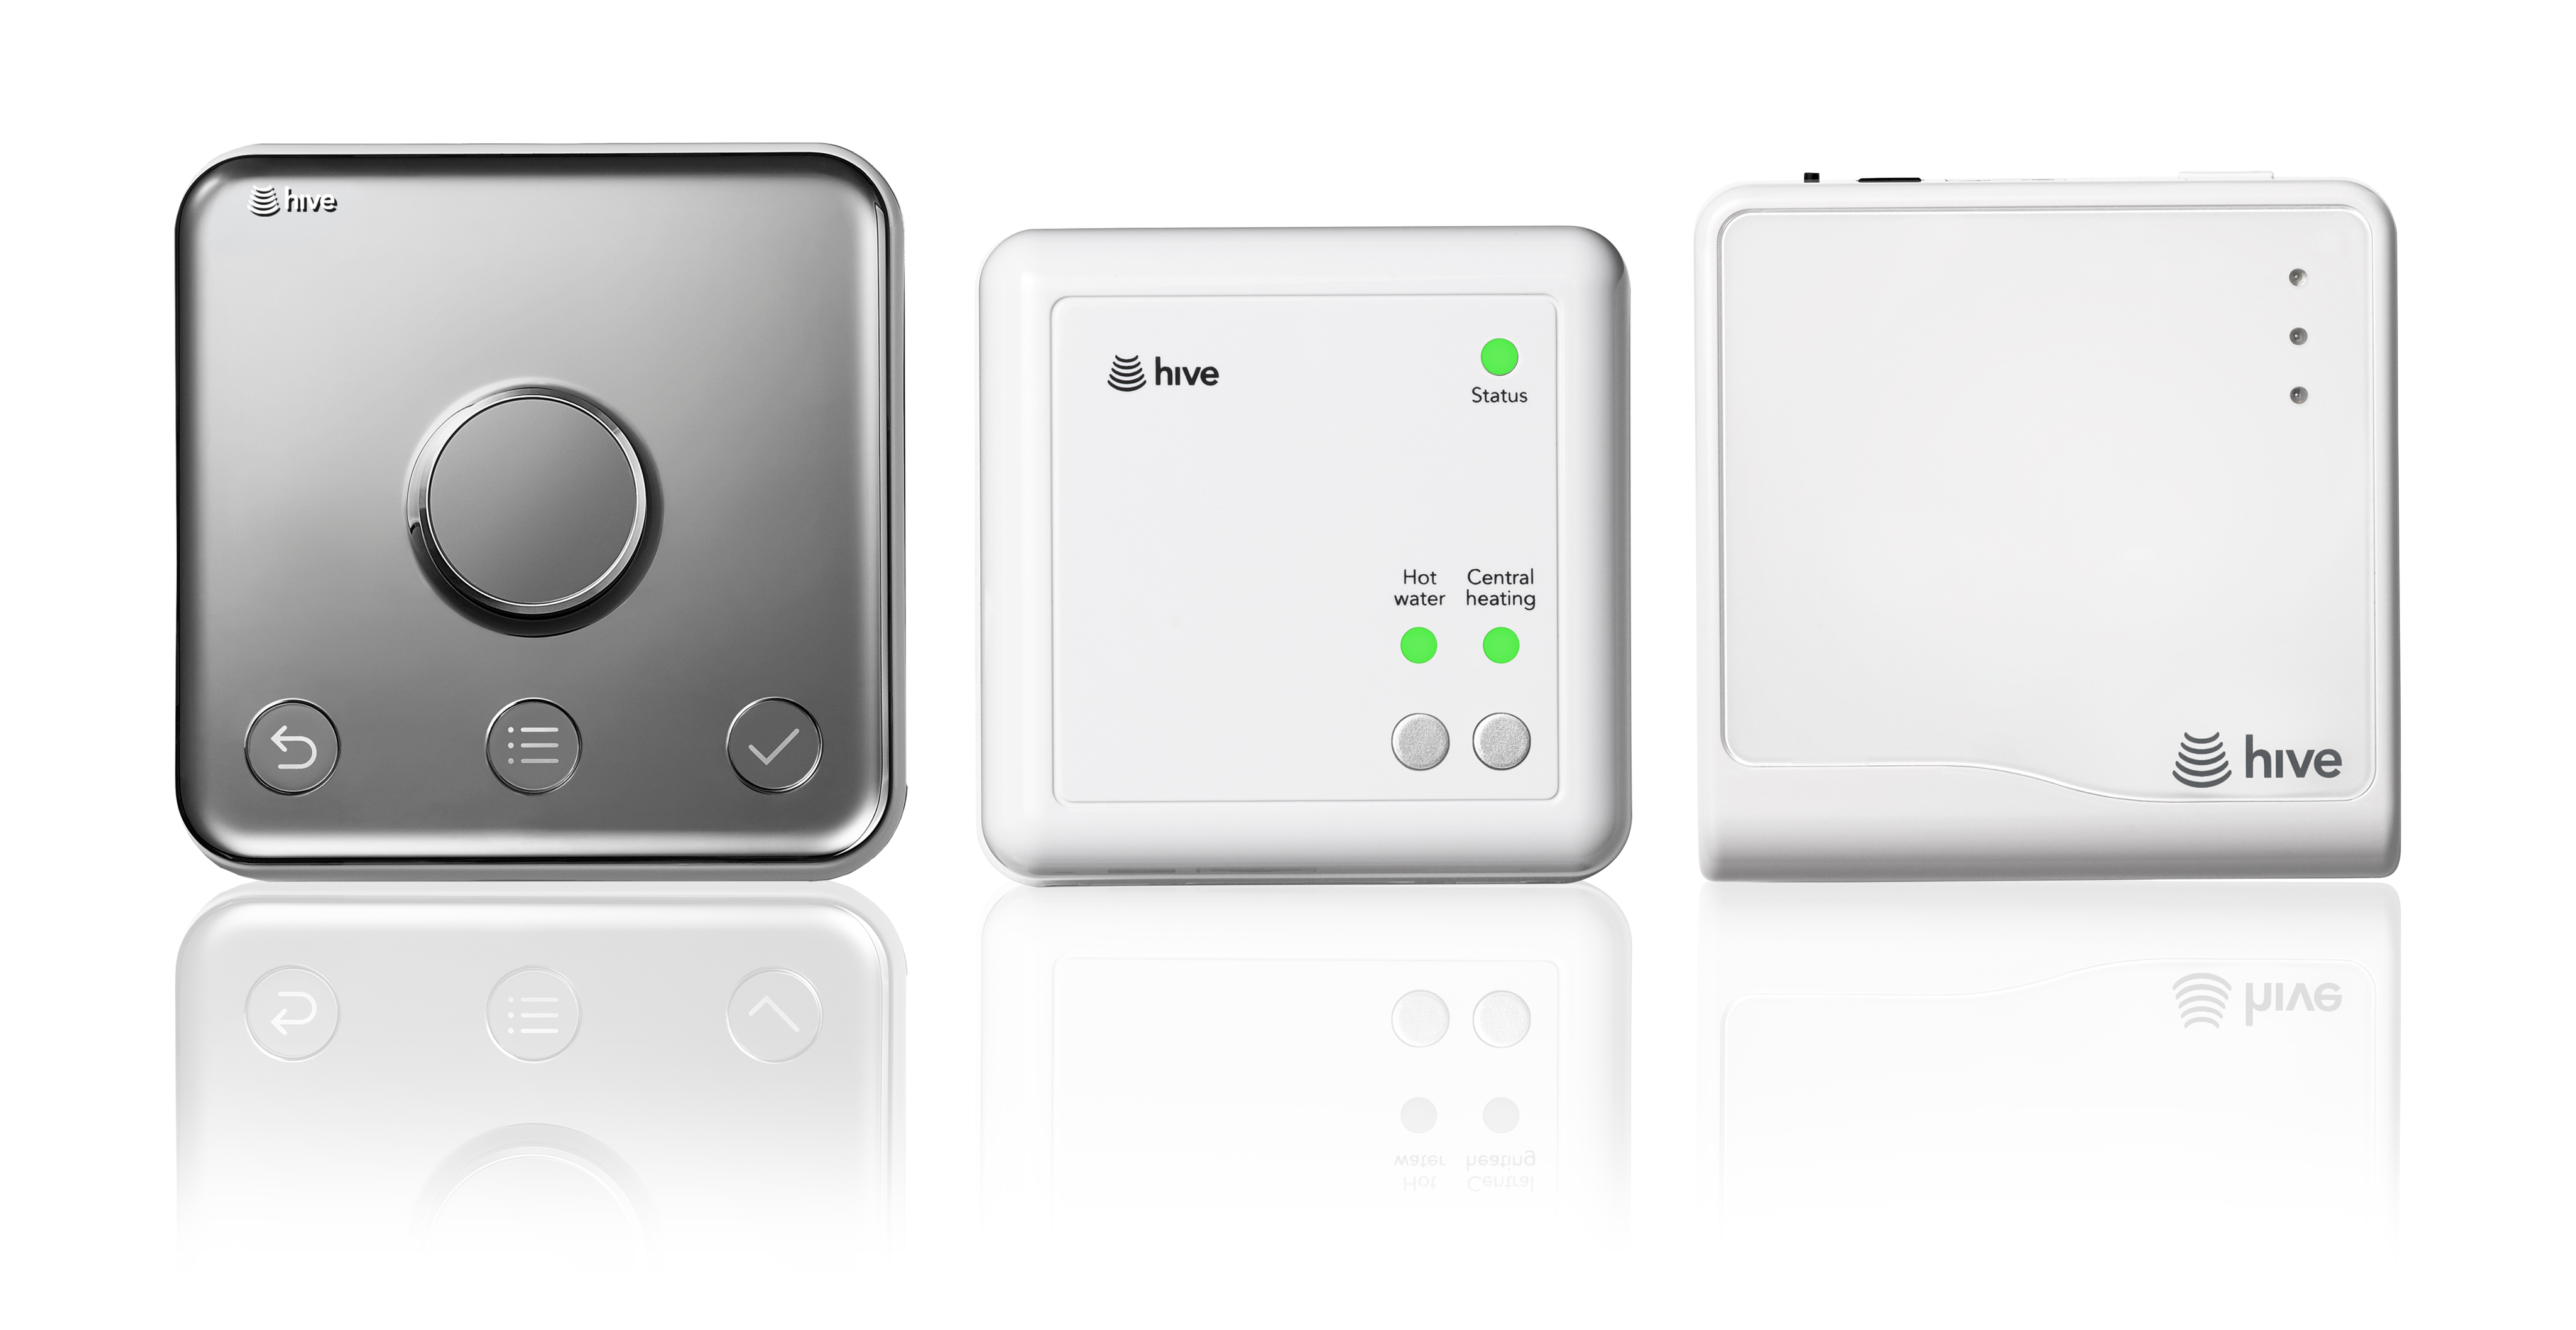 The Hive Smart Thermostat